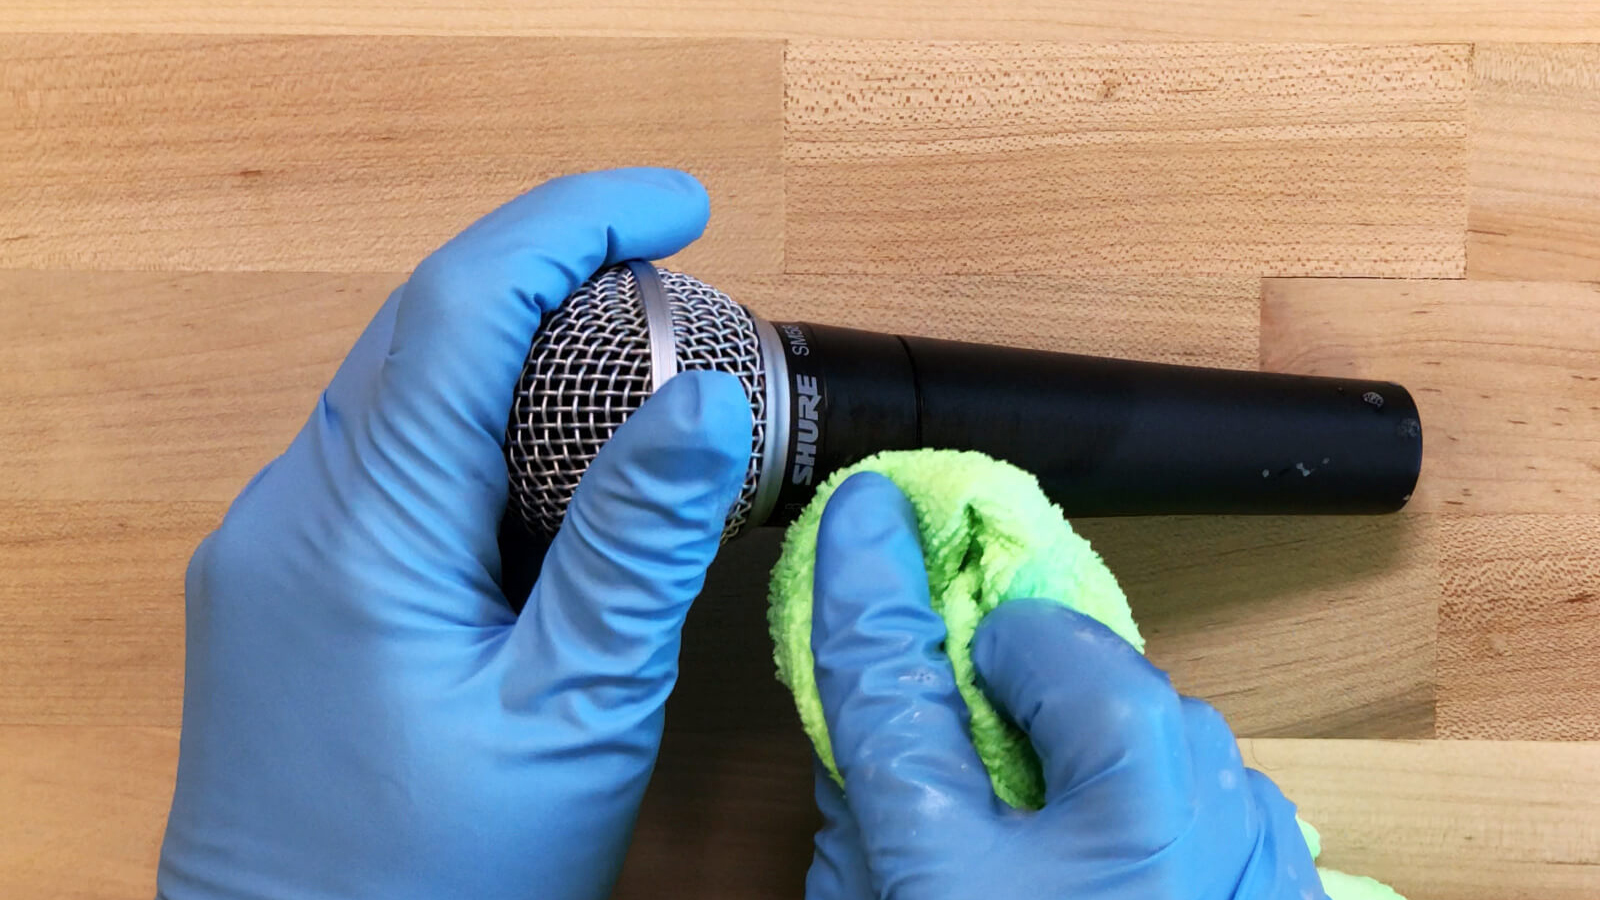 Shure Releases New Recommendations For  Cleaning Its Audio Products